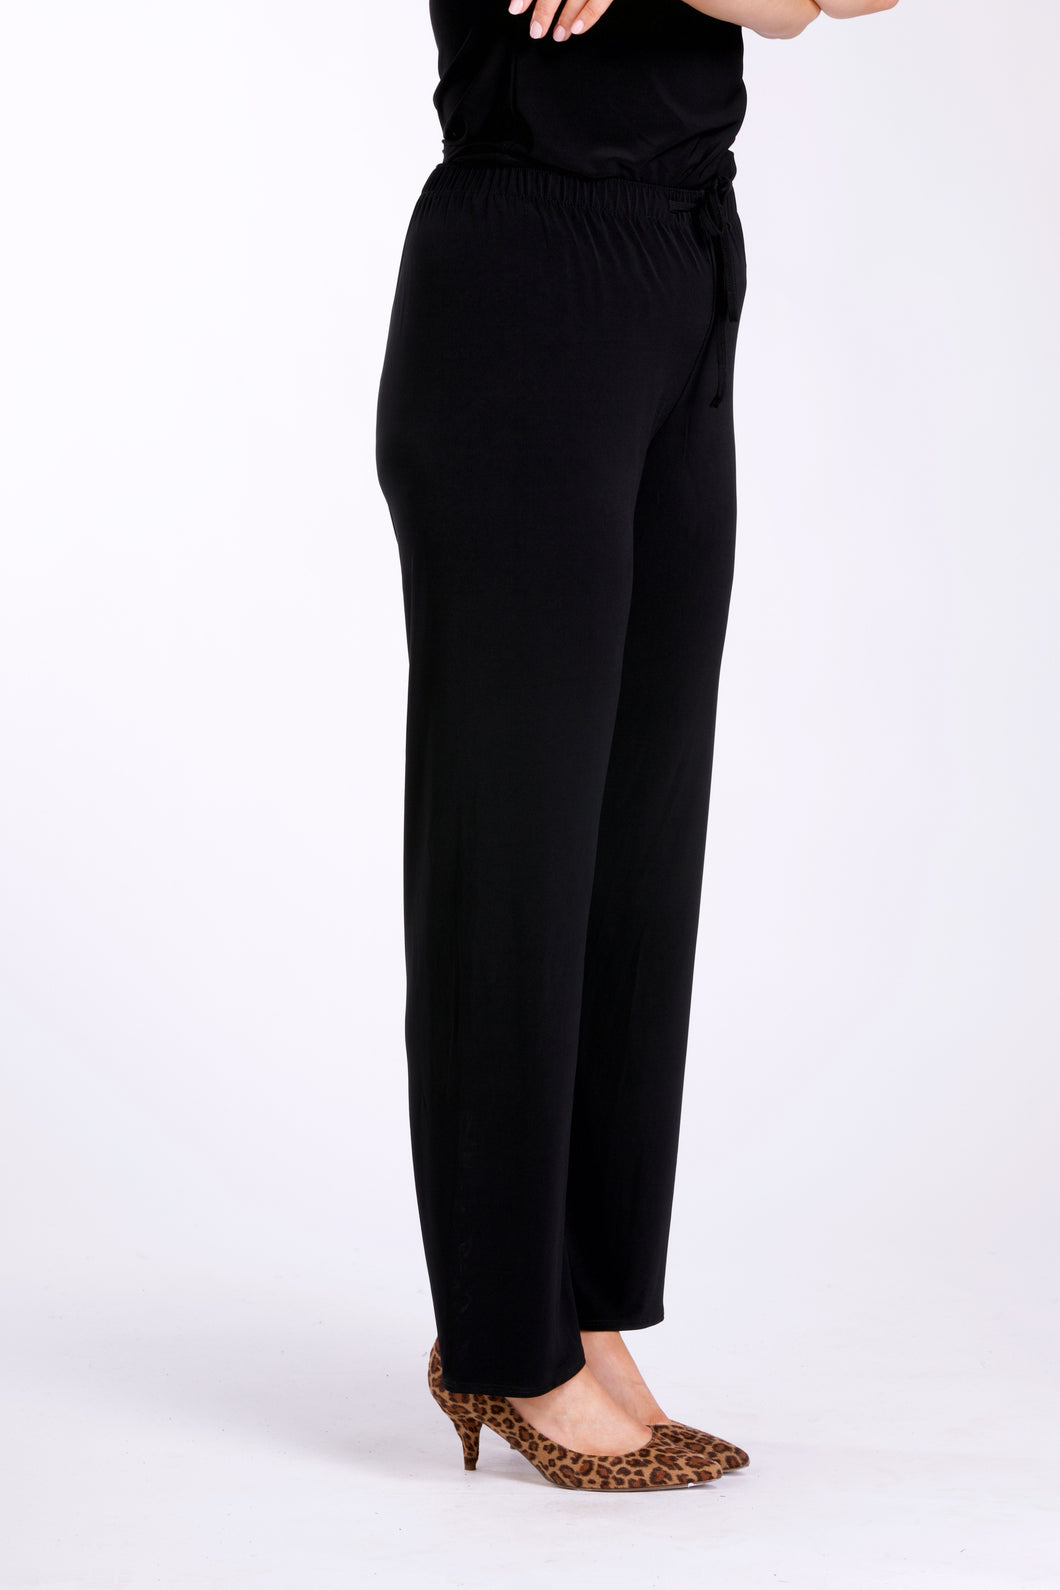 4201 ELASTIC WAIST WIDE LEG TROUSER Black